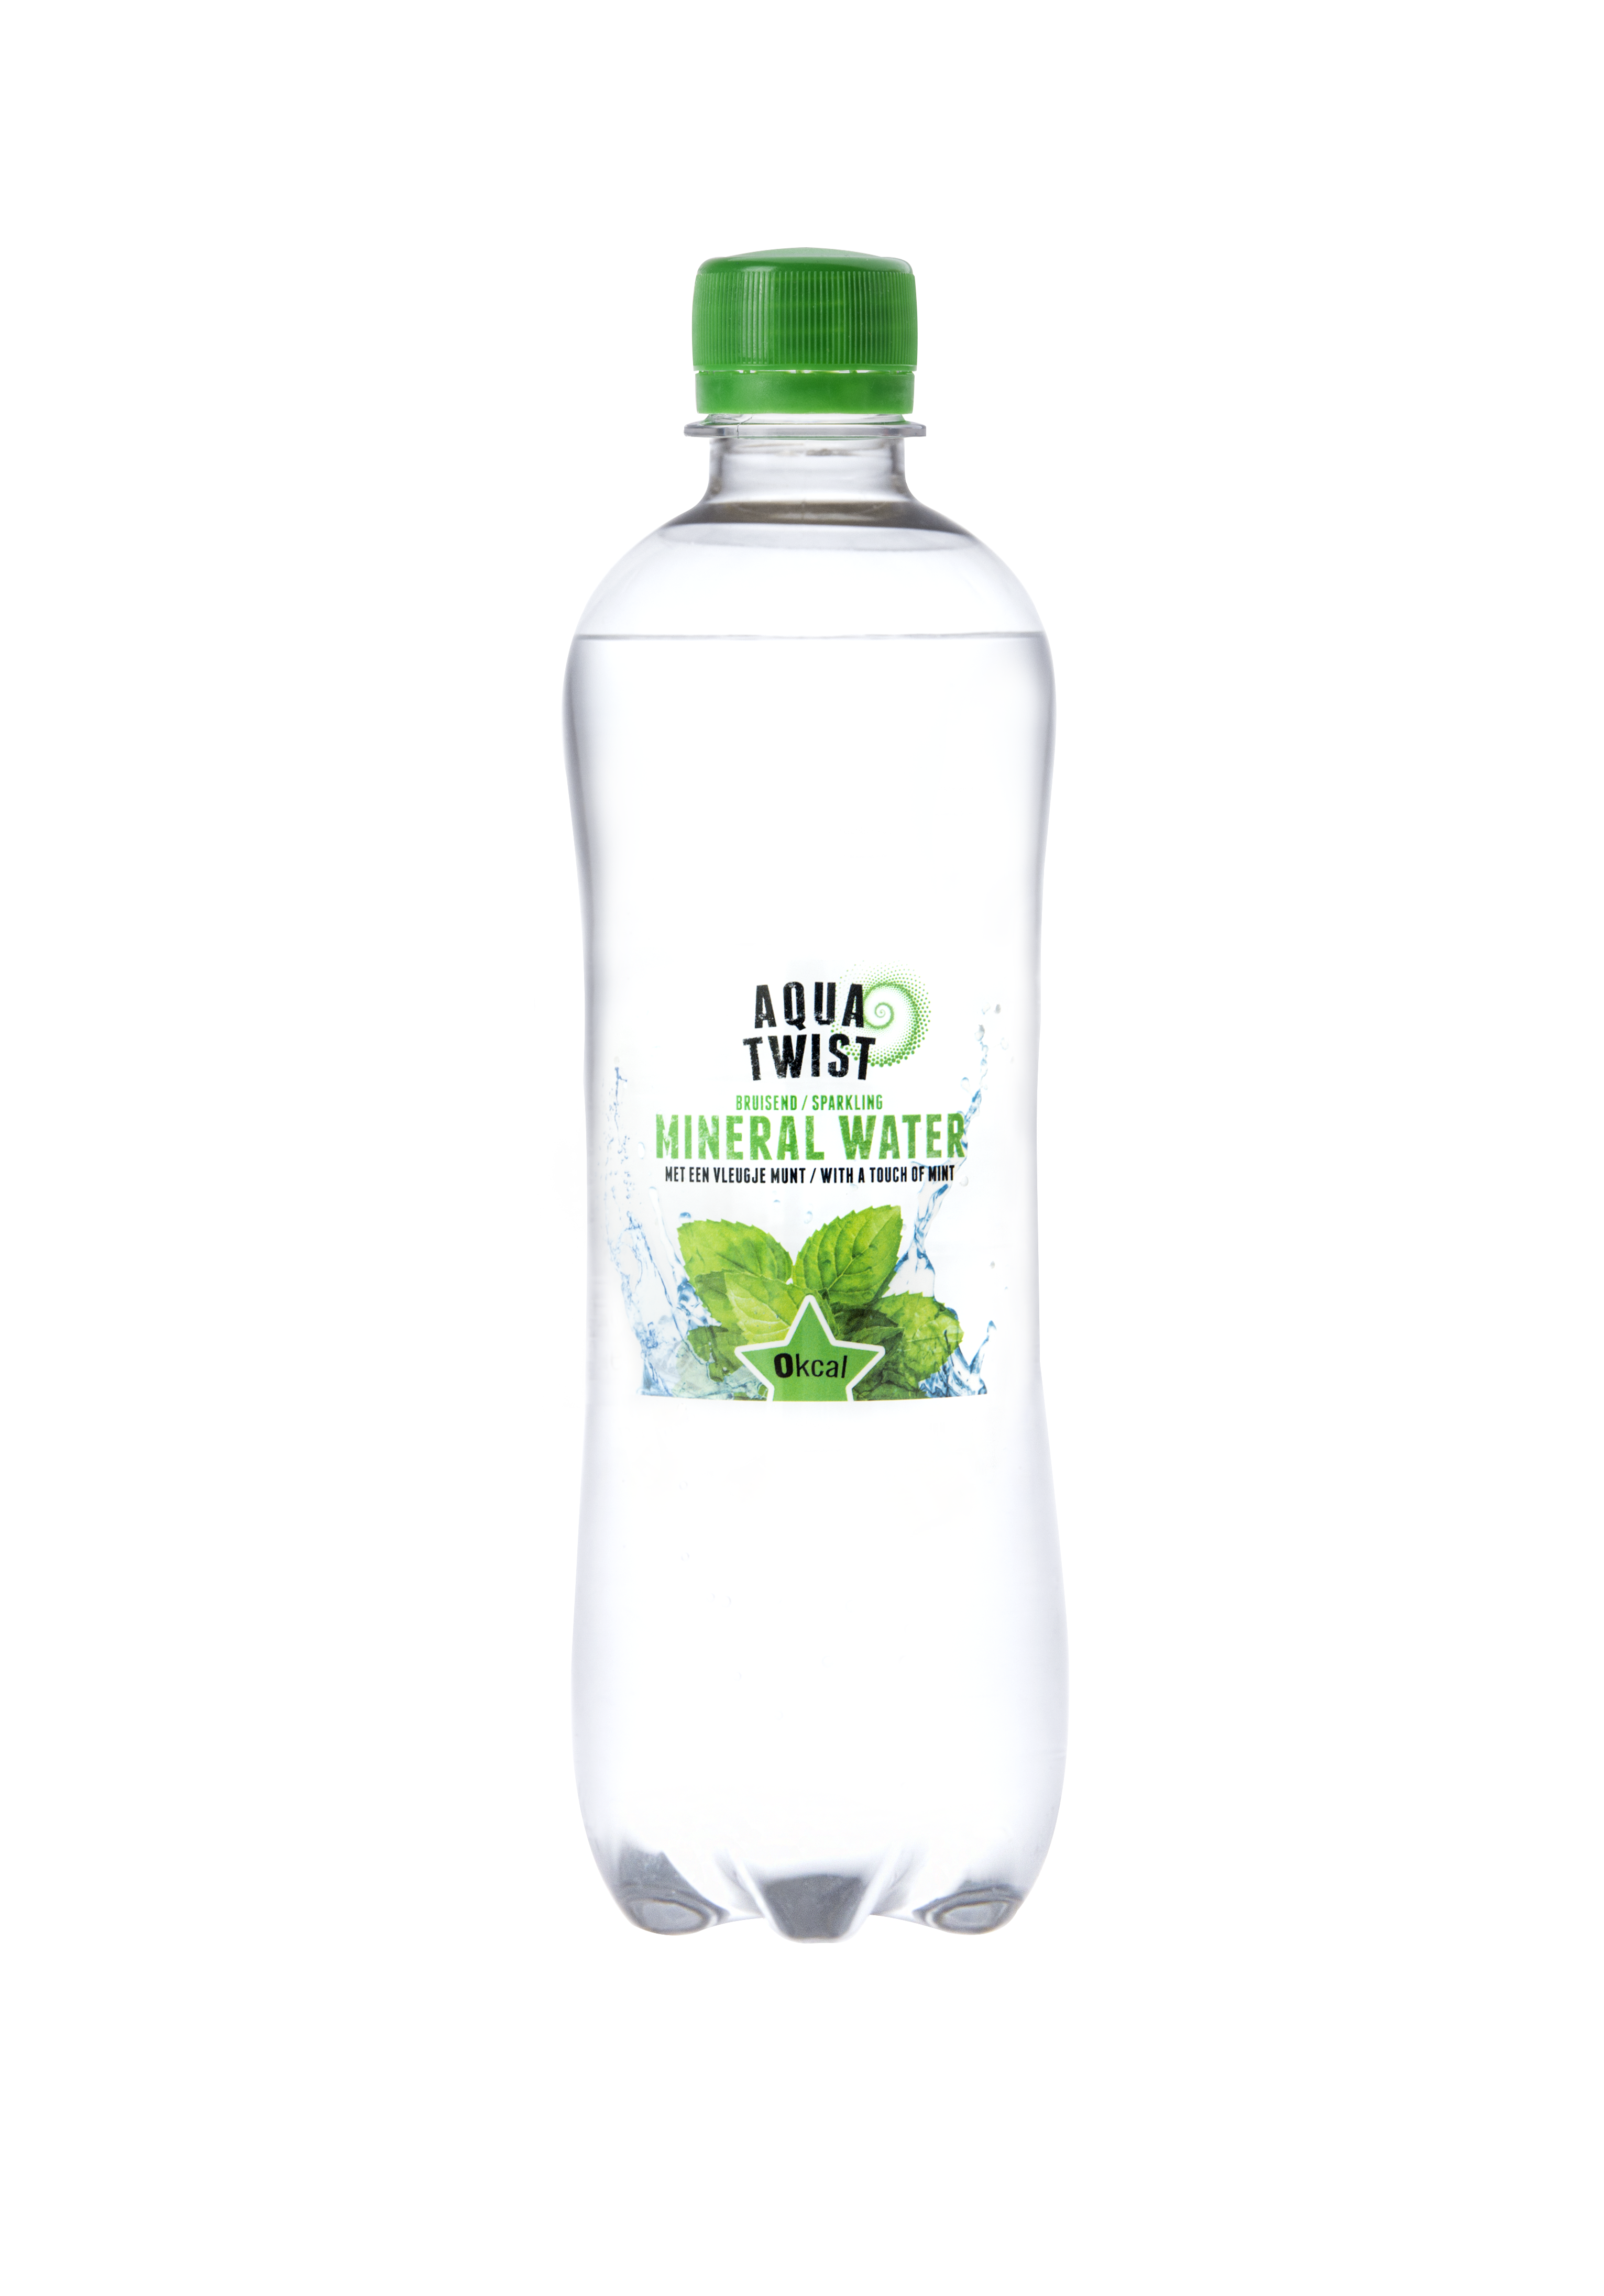 Aqua Twist Sparkling mineral water with a touch of mint 0.5 liter